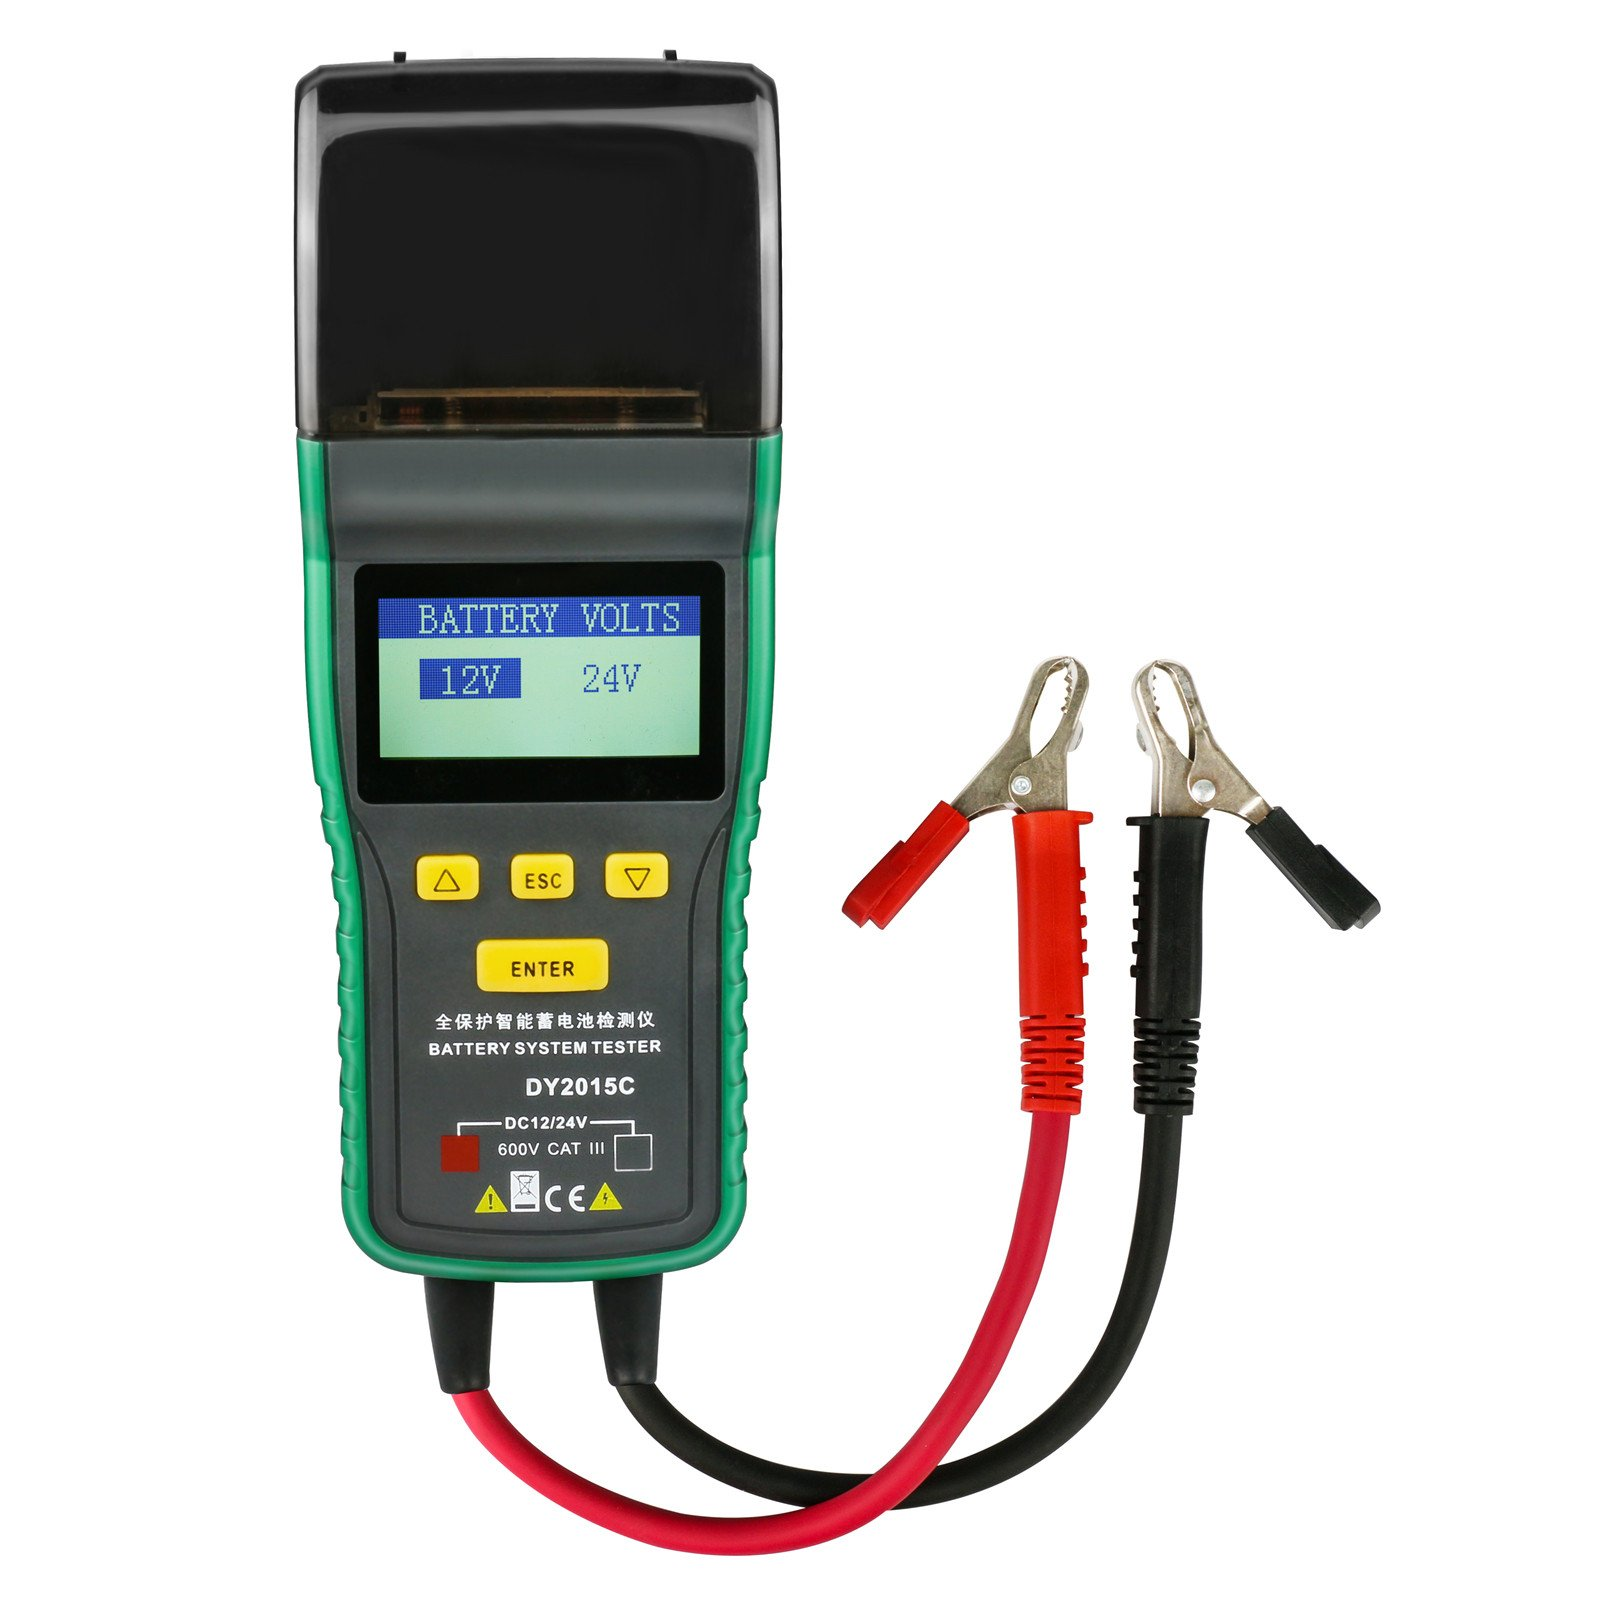 Car Battery Tester 12V / 24V 100-1700 CCA SOH 0-100% Digital Battery Analyzer 2.5'' LCD Display Automotive Battery Load Tester with Suitcase Printer for Car Boat Motorcycle Light Truck by Mrcartool (Image #2)